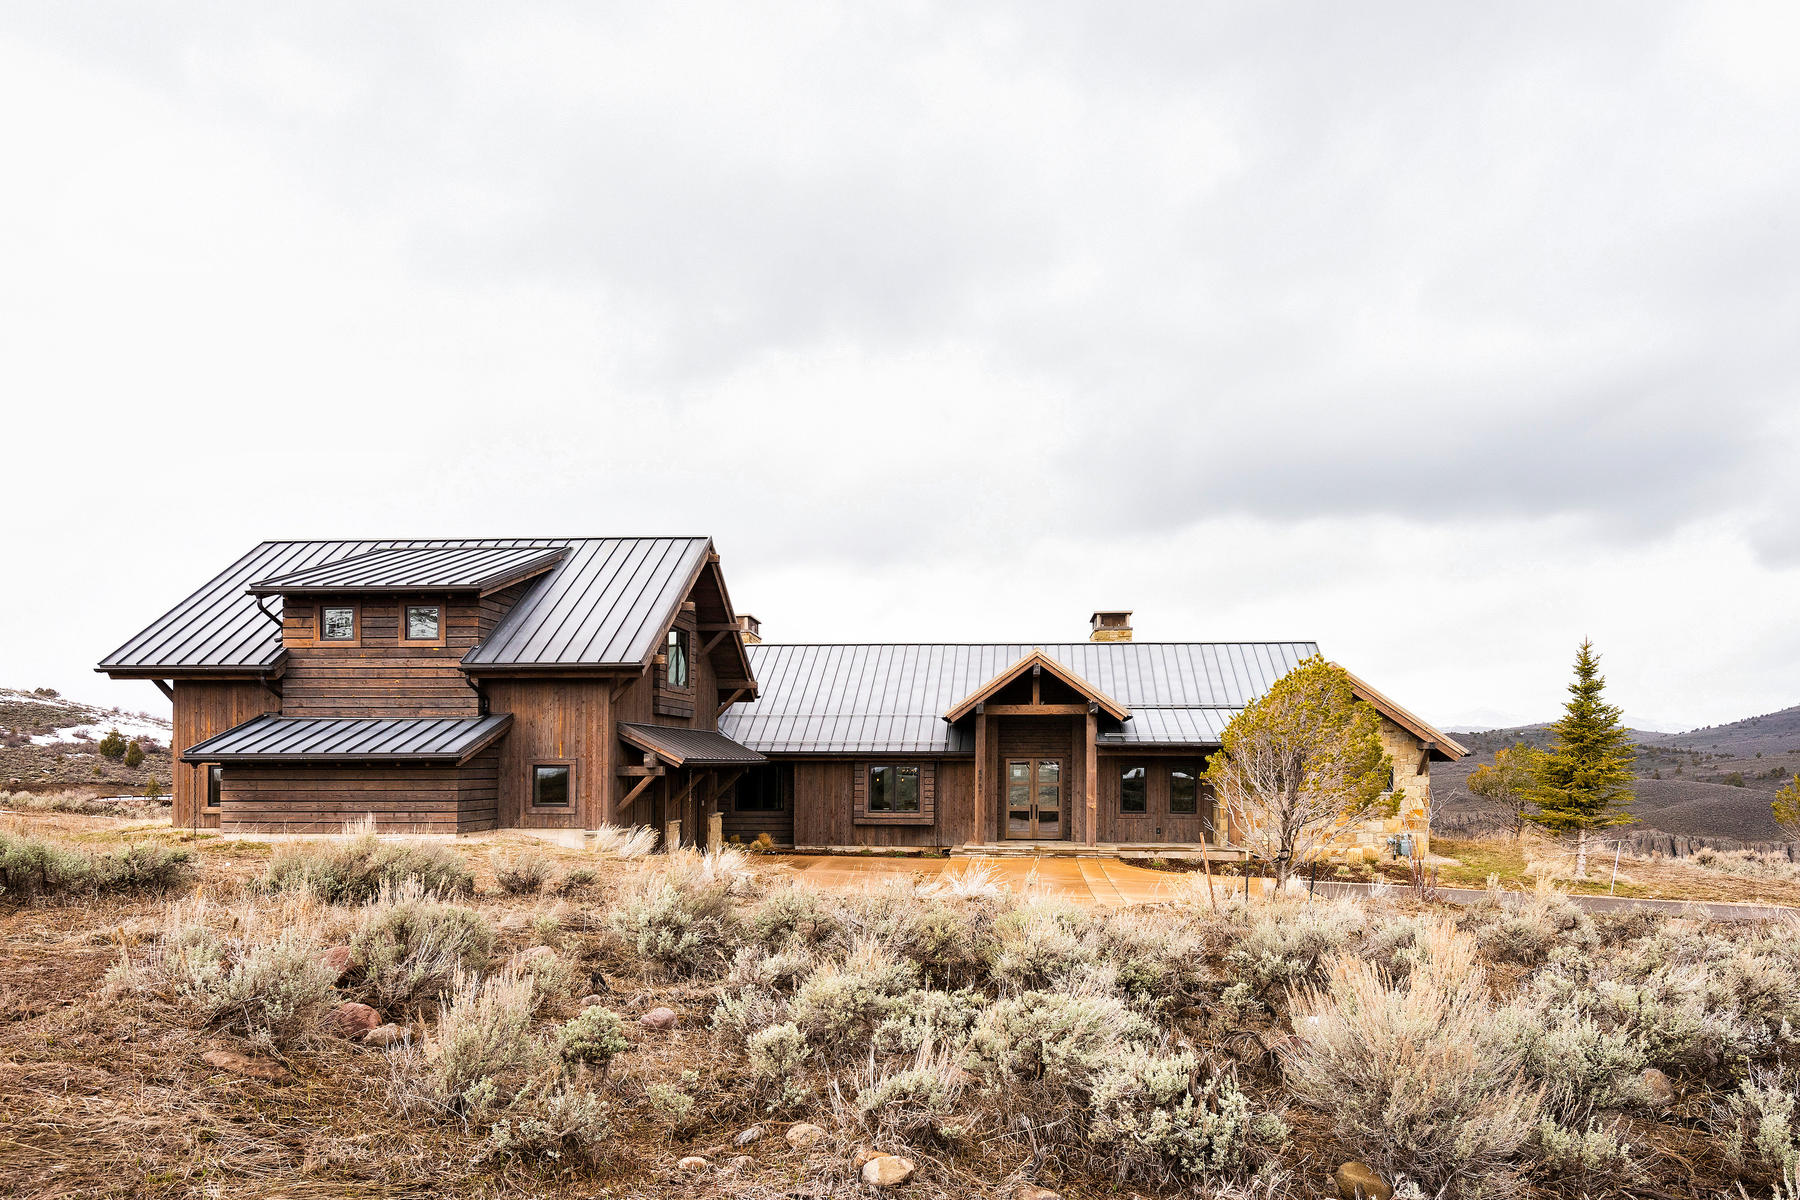 Single Family Homes for Sale at Custom Home Atop Victory Ranch's River Corridor 5787 E Rock Chuck Dr Lot 31A Heber City, Utah 84032 United States